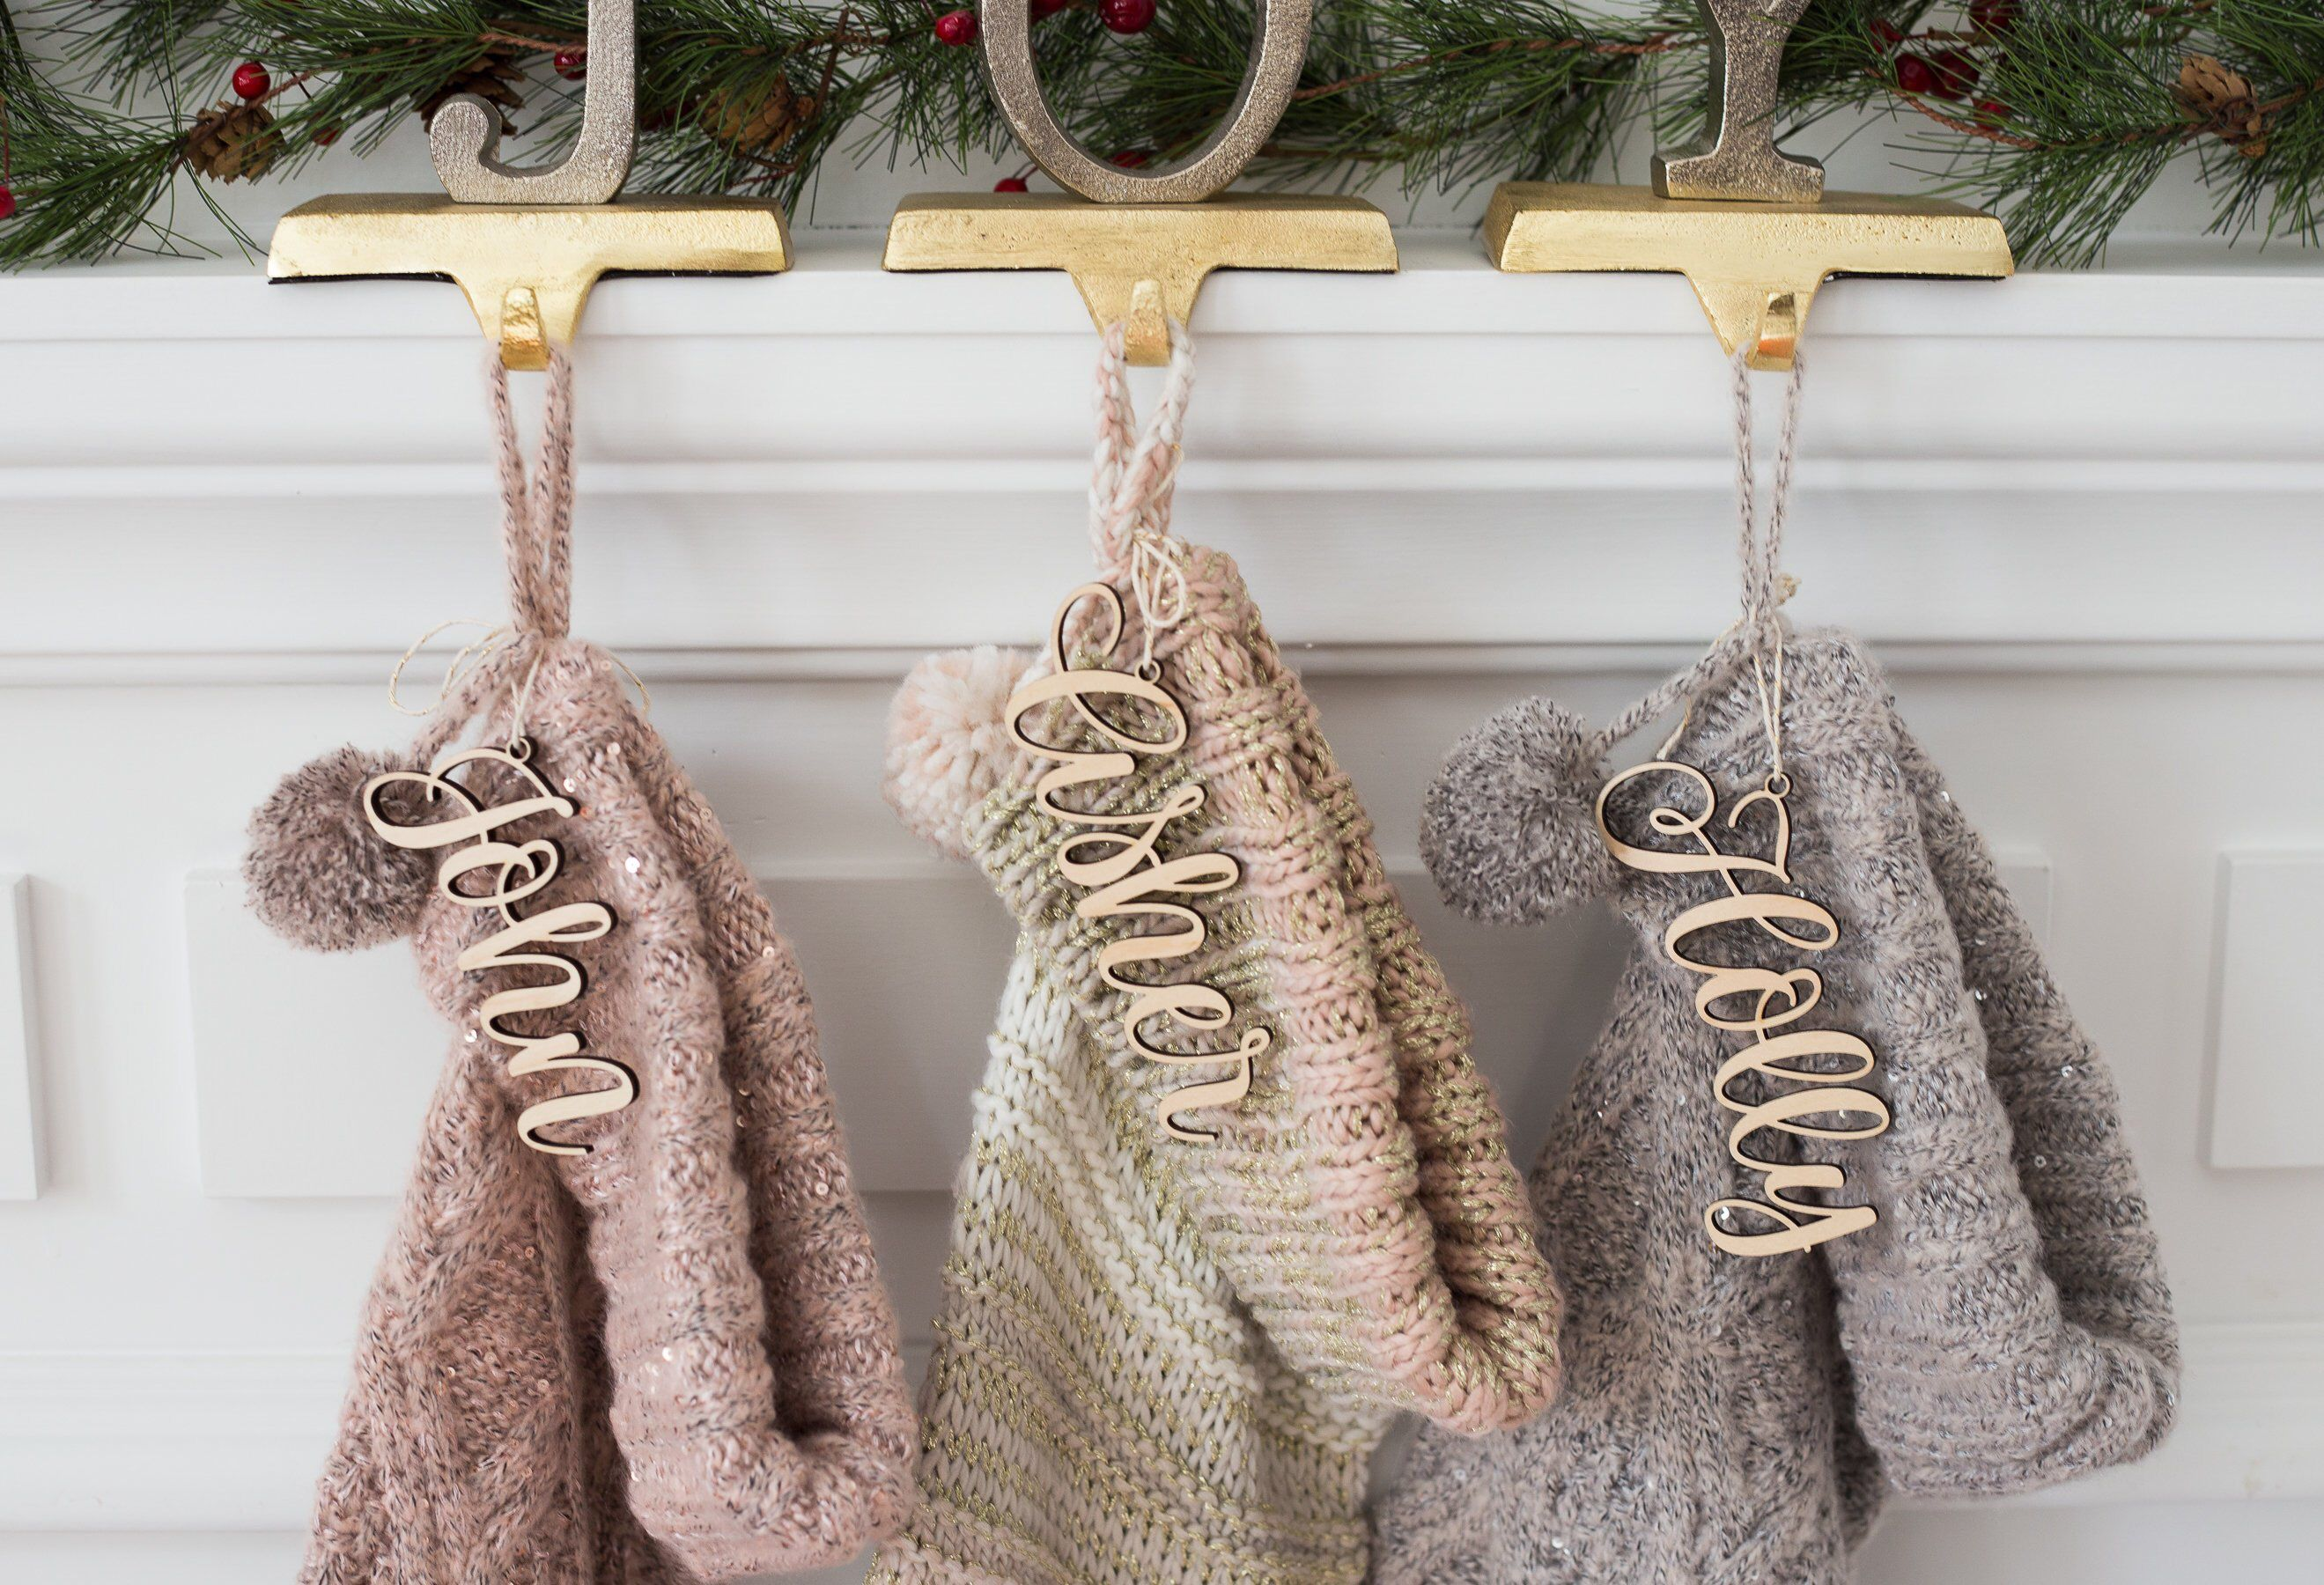 Wooden Names for Stocking, Christmas Stockings Name Cutout